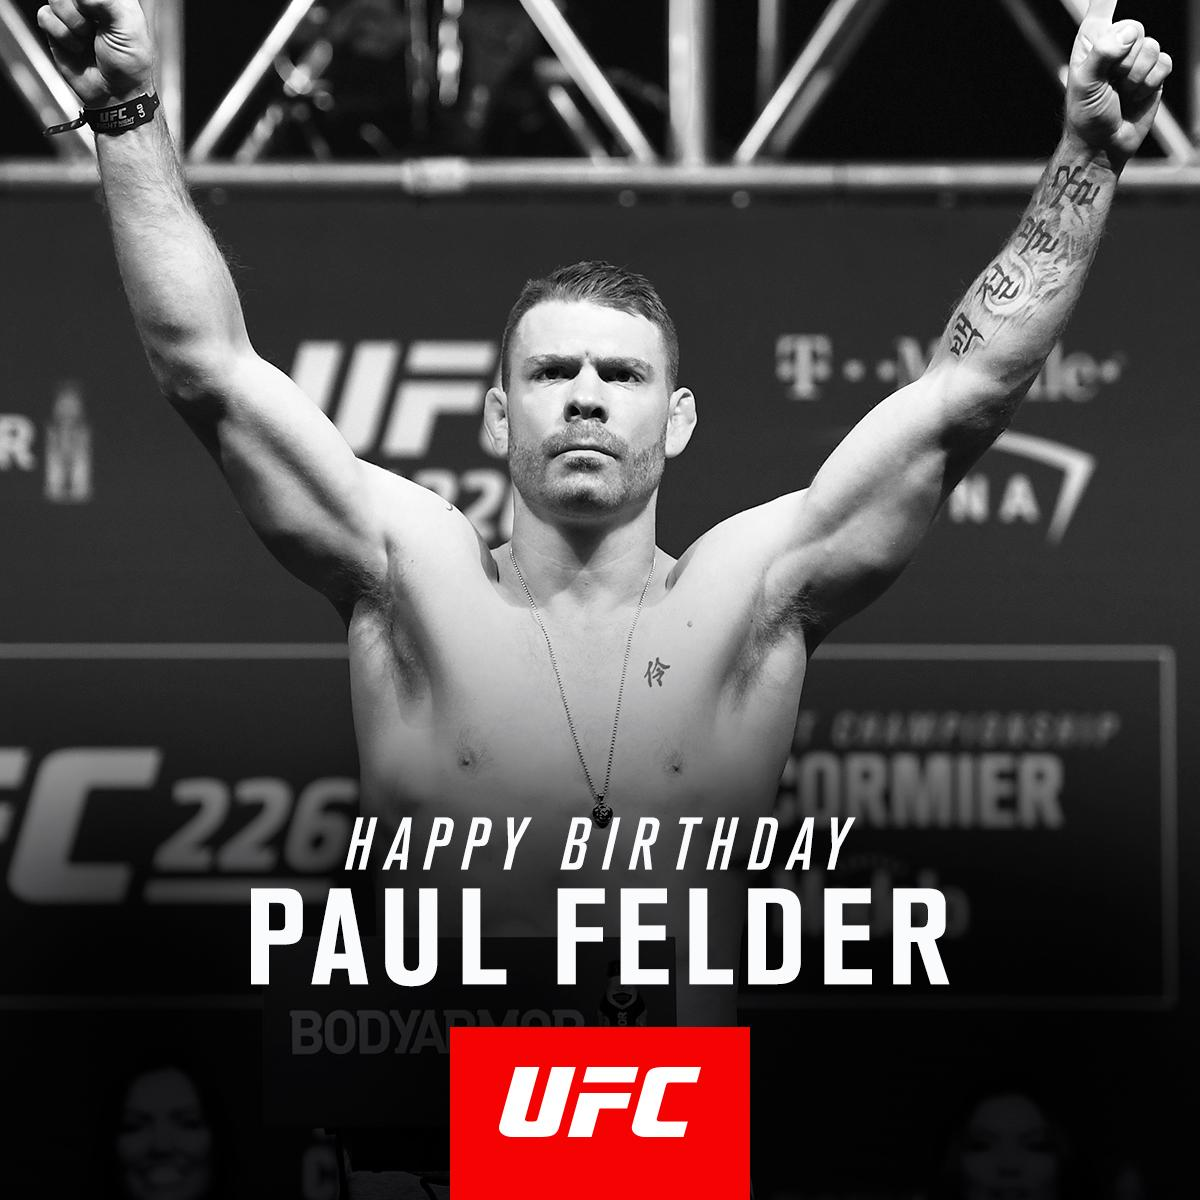 RT and let @FelderPaul know you are wishing him a Happy Birthday! 🎈